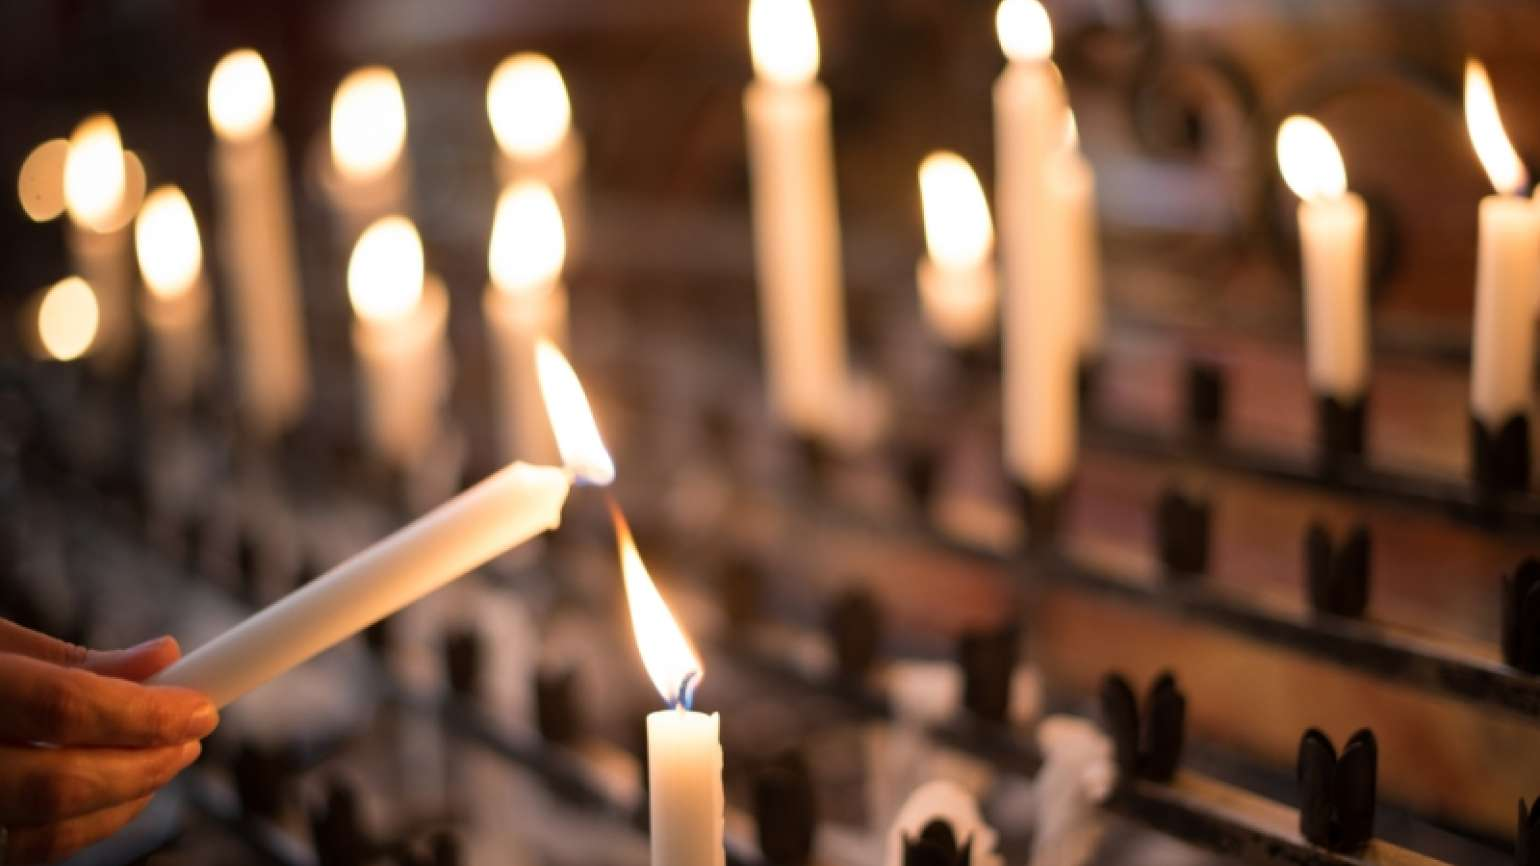 Lighting a candle in church as a gesture of thanksgiving